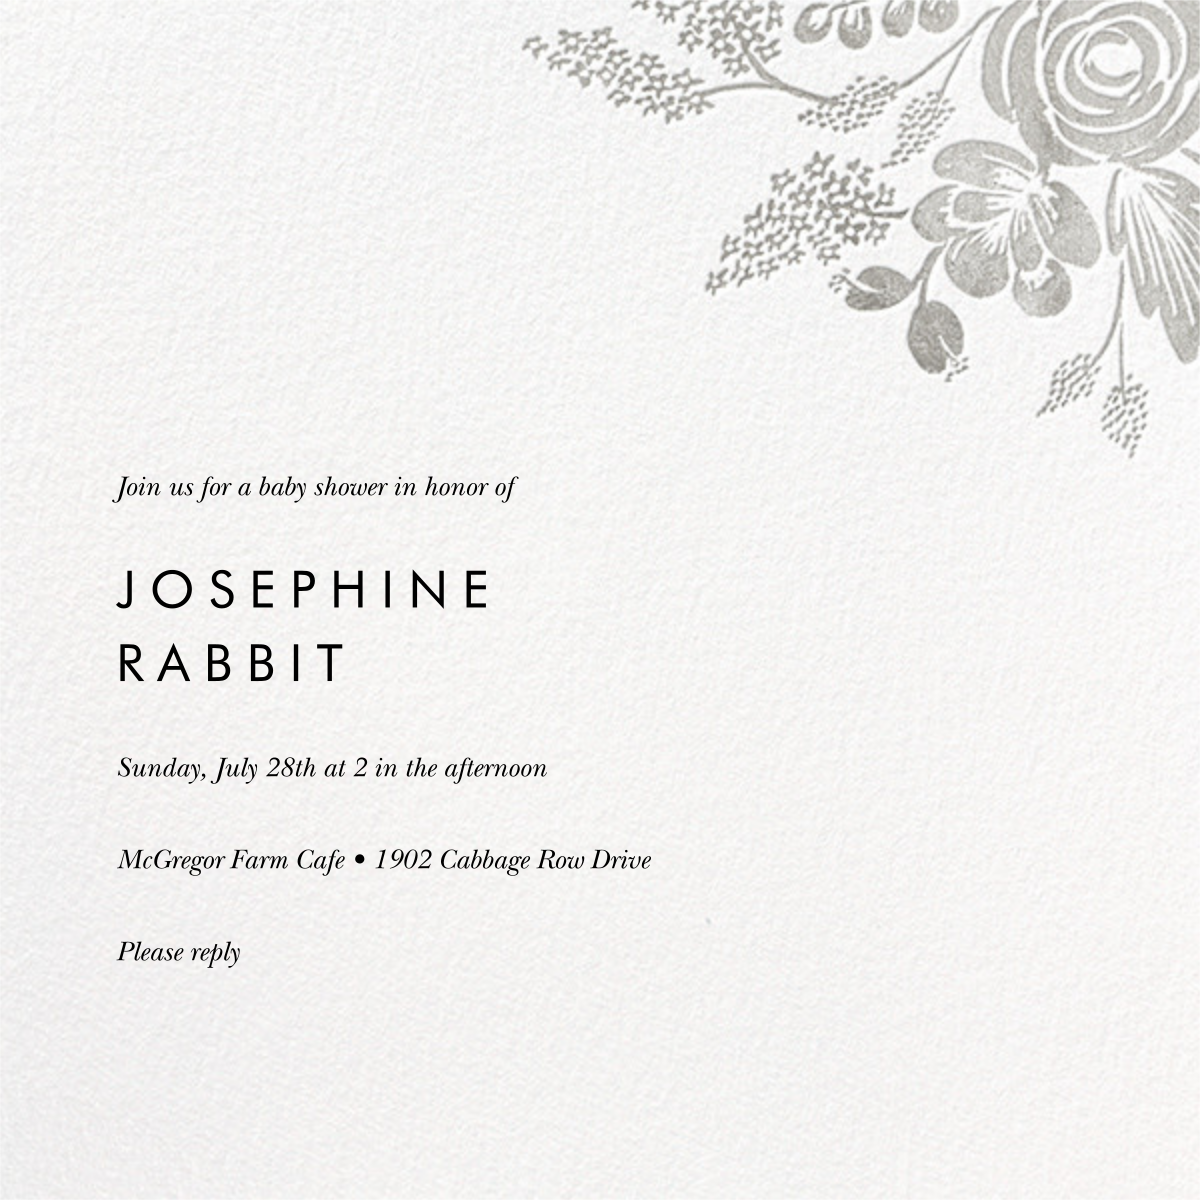 Heather and Lace (Square) - Silver - Rifle Paper Co. - Baby shower